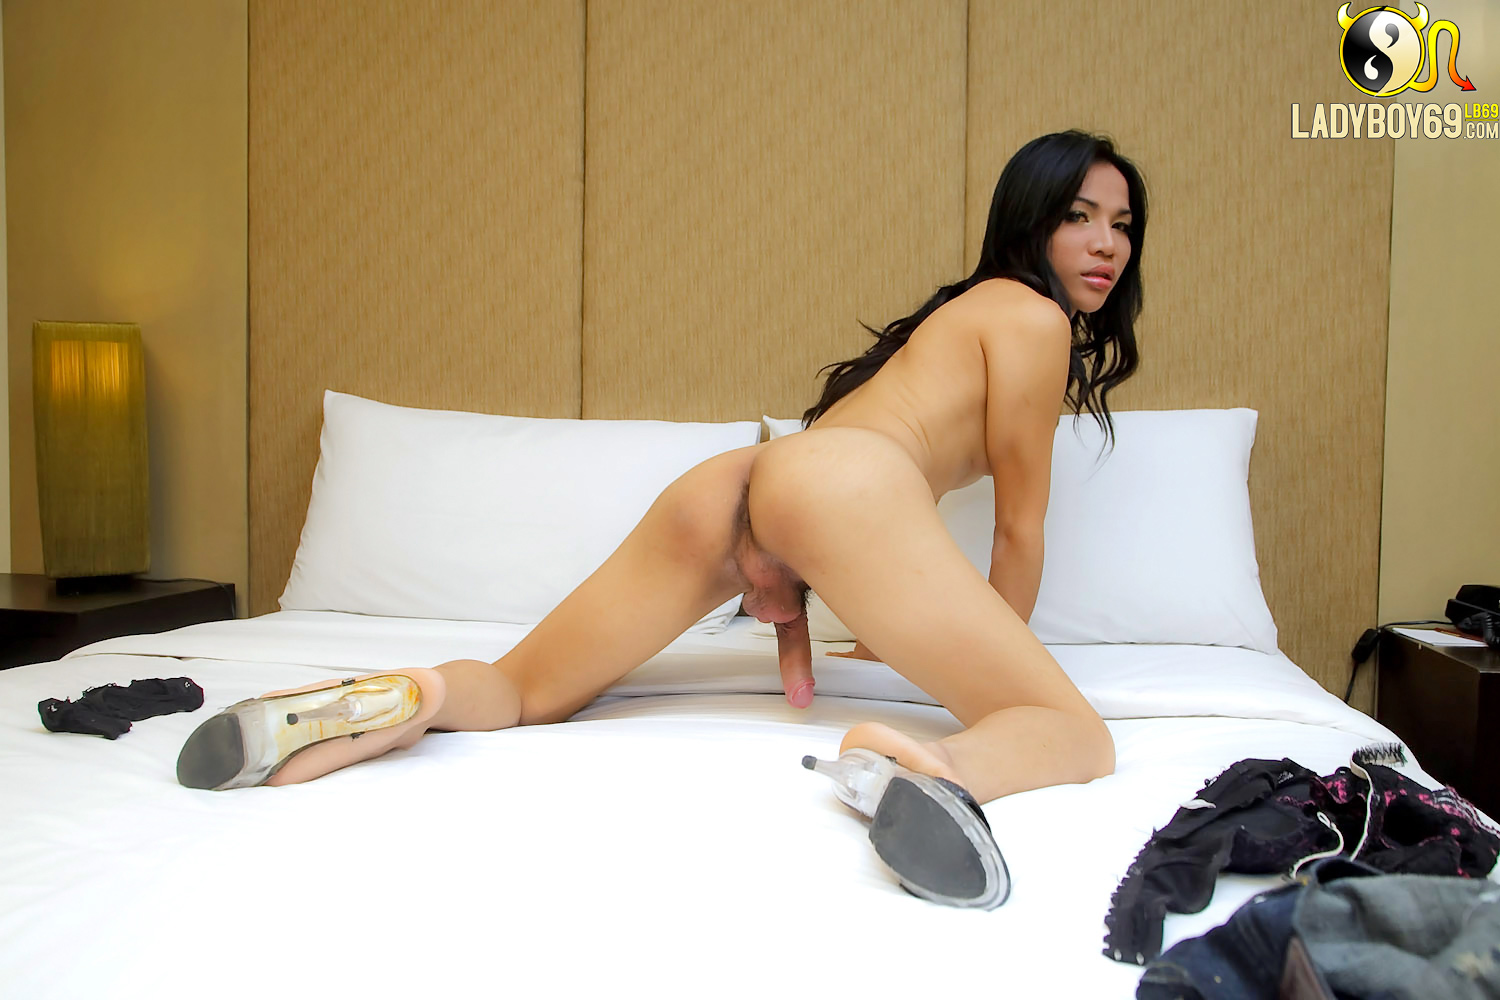 Teen shemale doggie style and ready for your cock tgirl xl